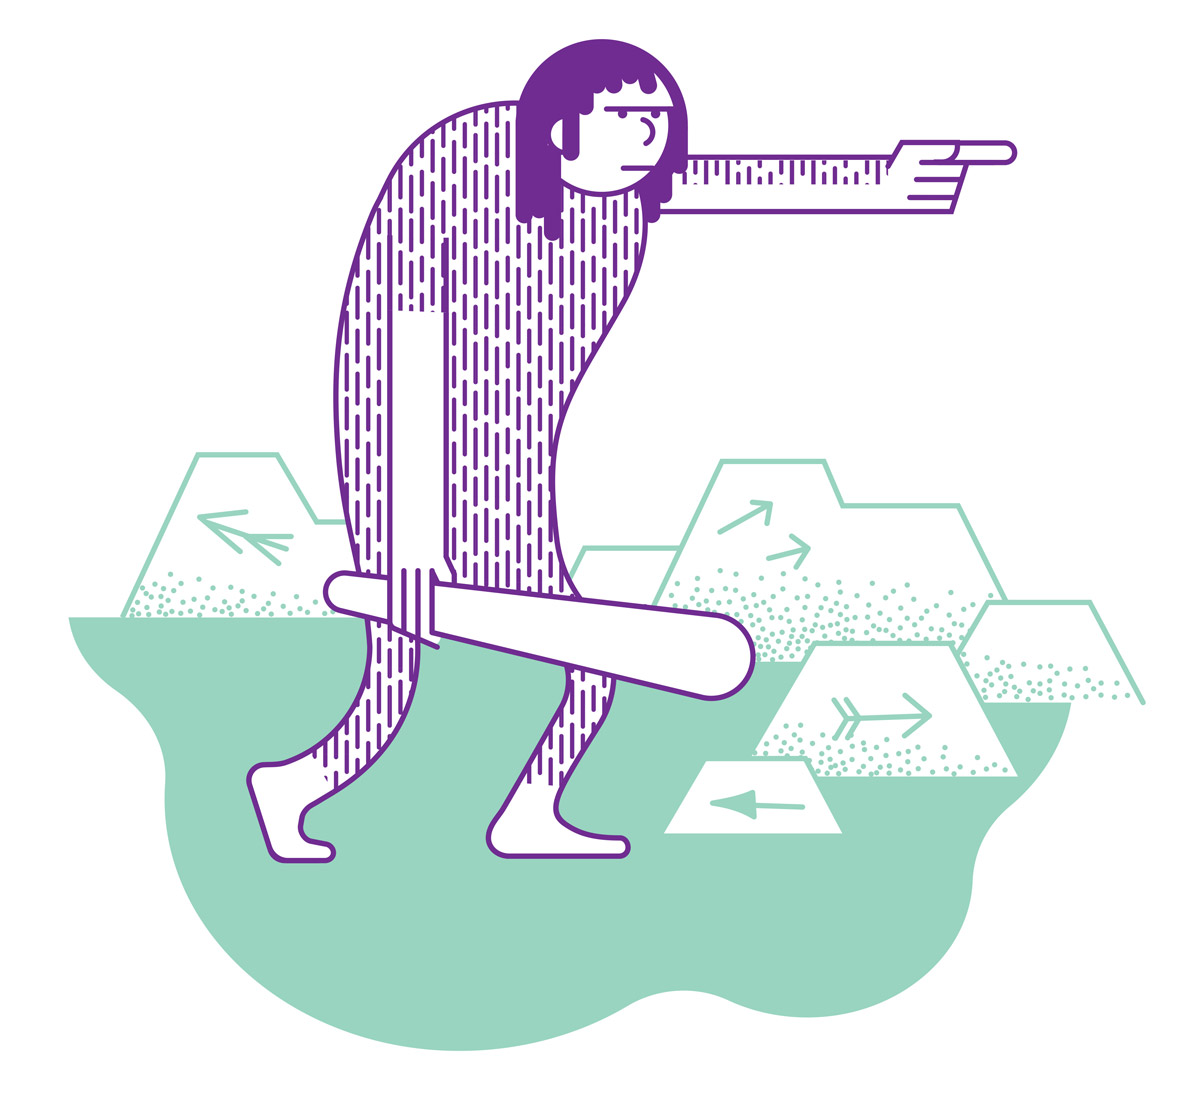 Australopithecus, illustration by Axel Pfaender for Fluter magazine.